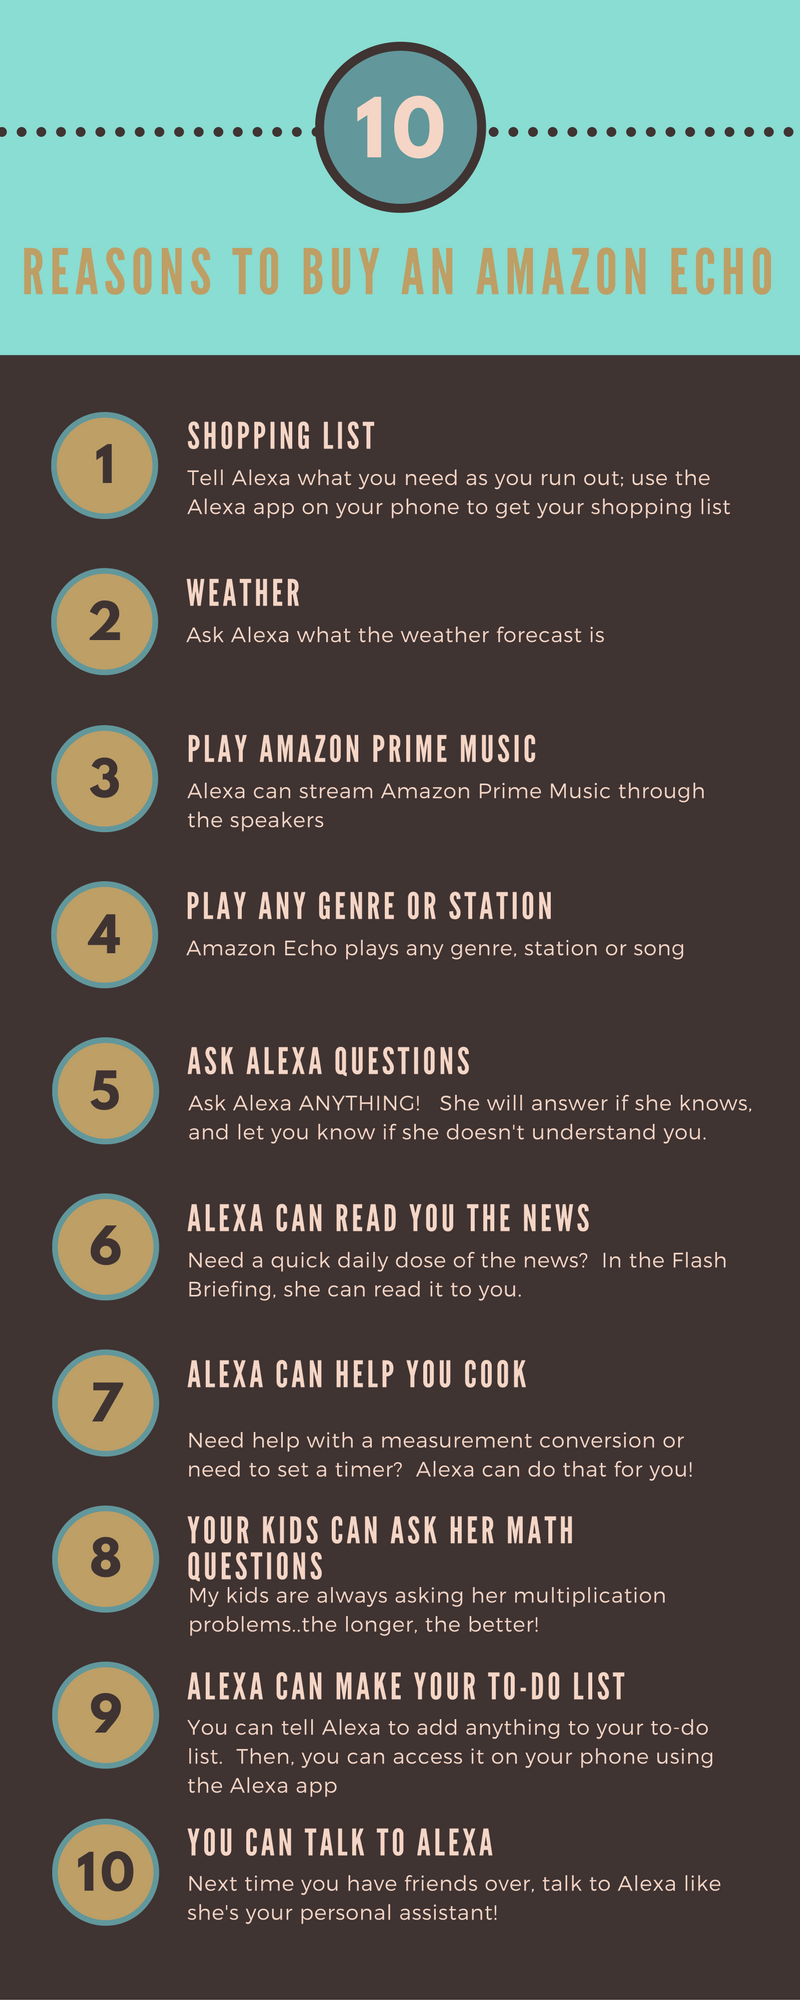 Amazon Echo-Top 10 Reasons to Buy!